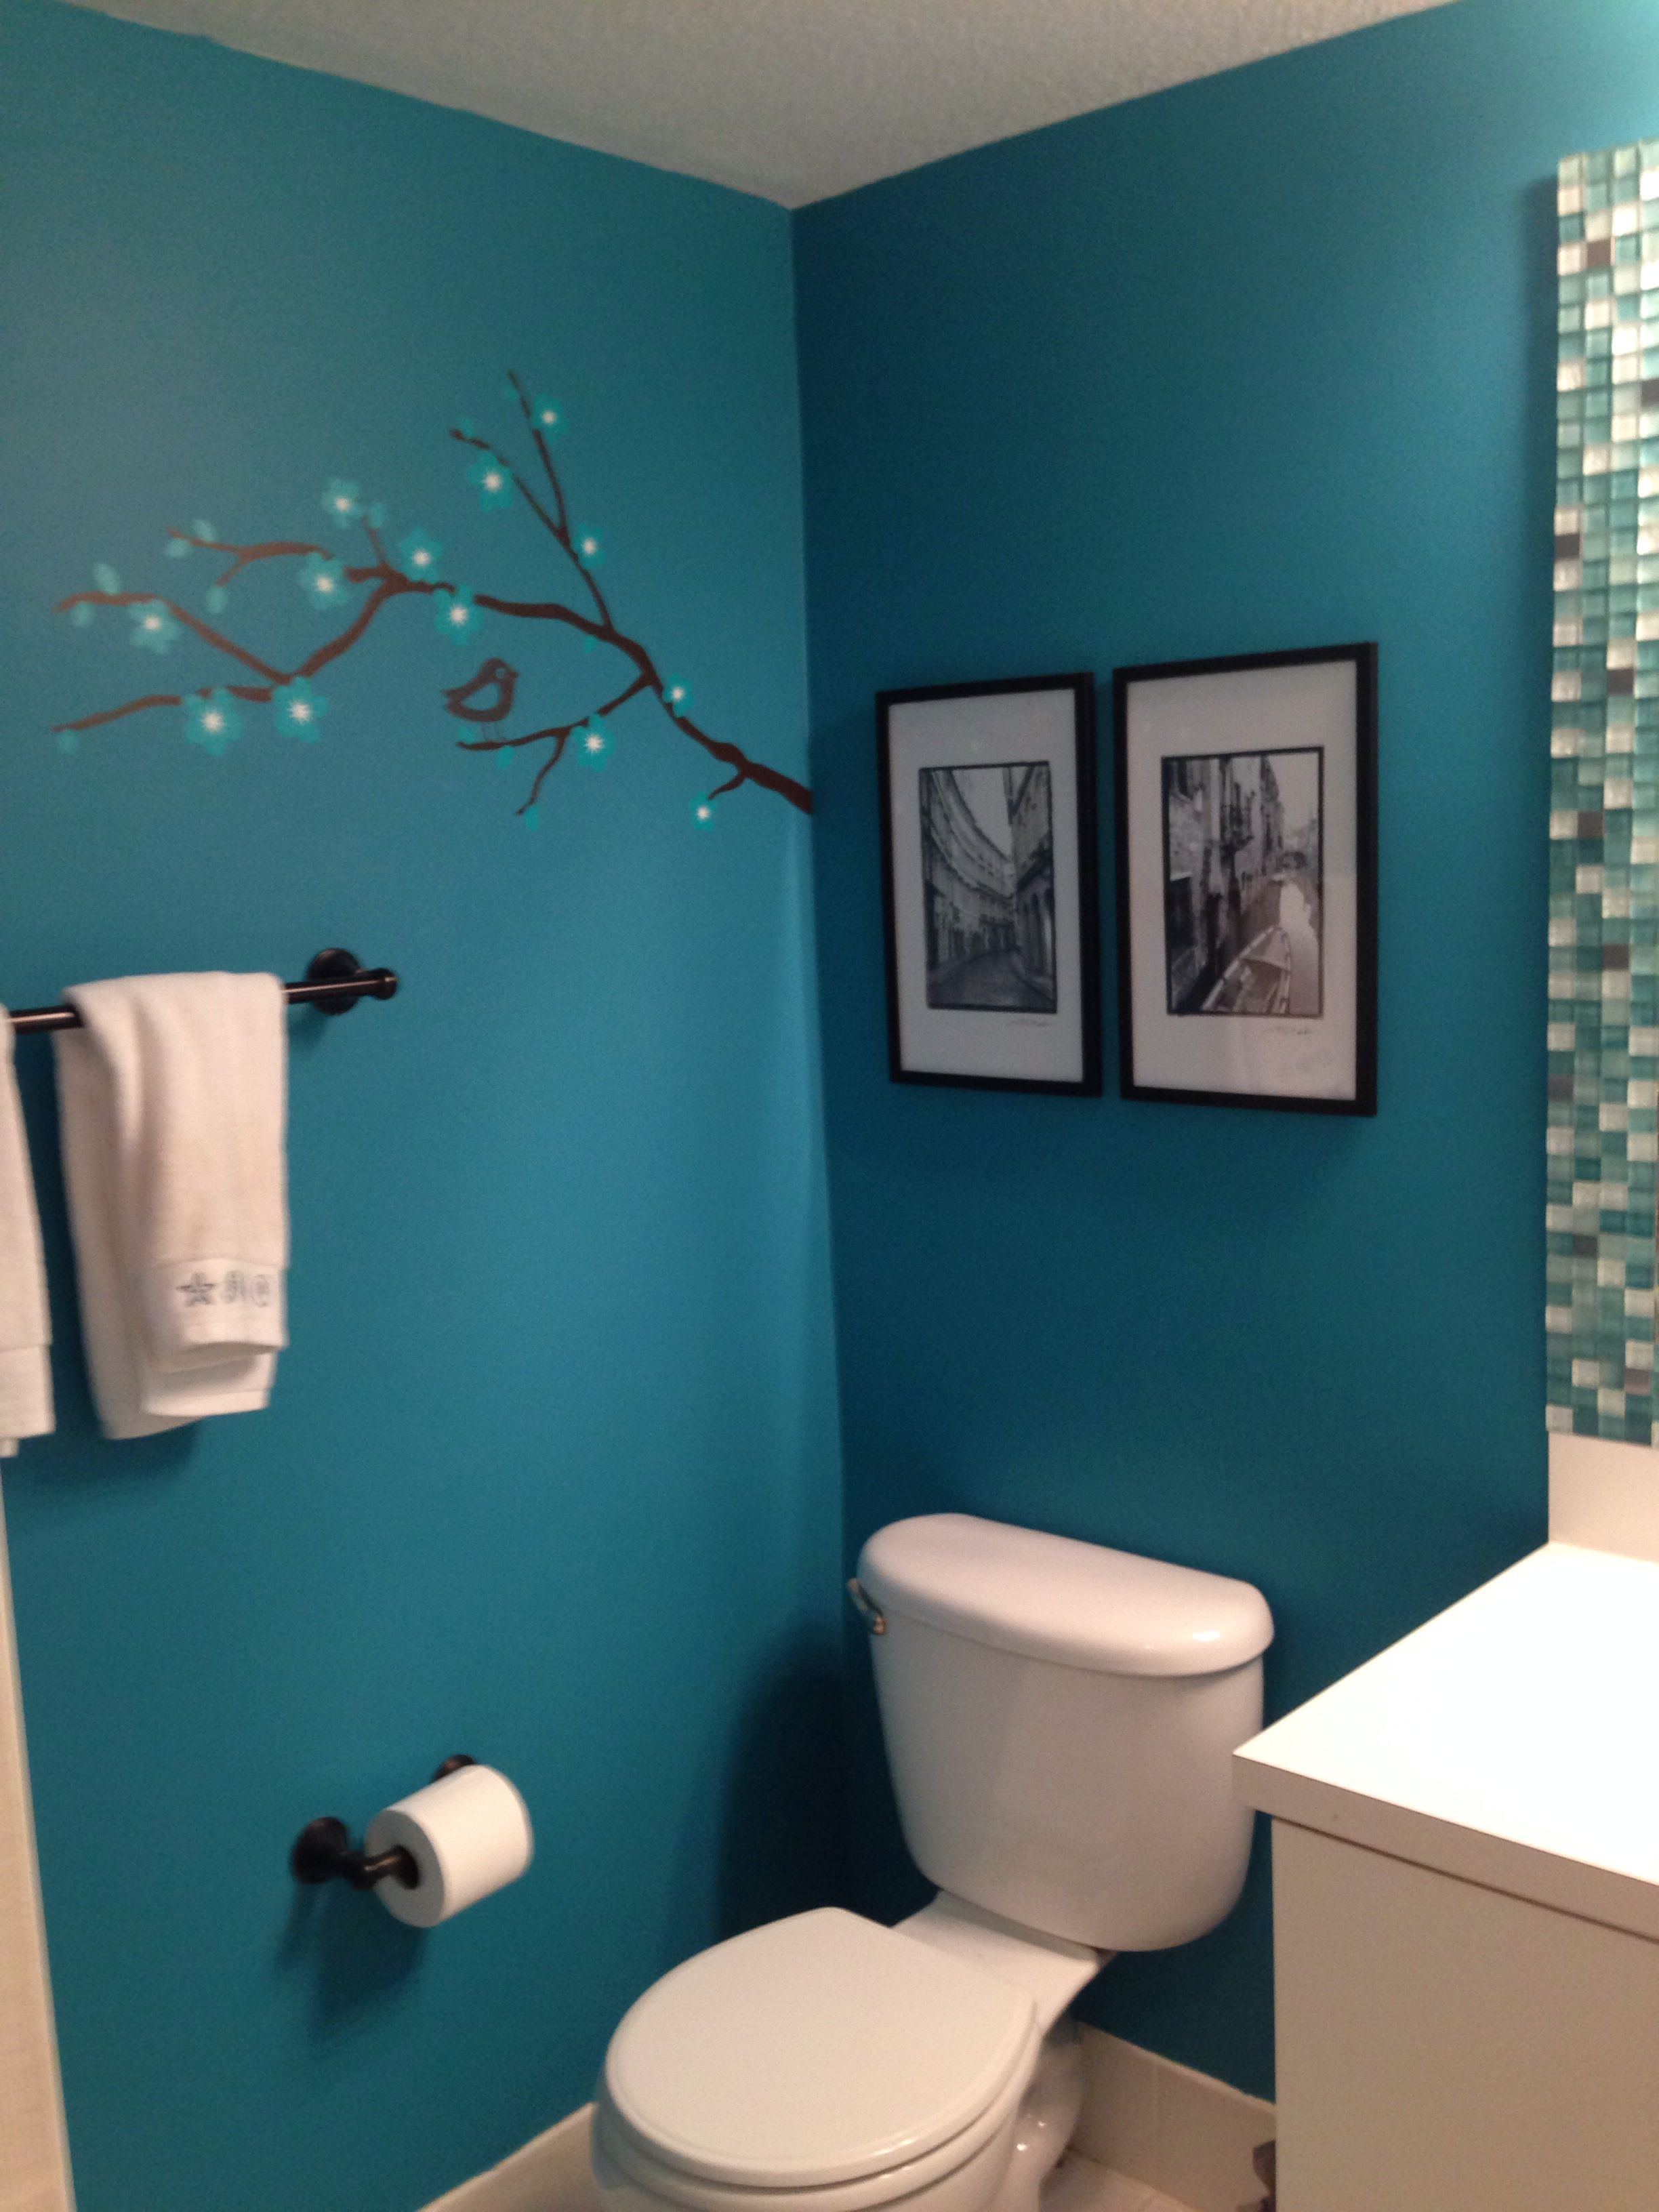 Teal bathroom bathroom pinterest teal black and house for Black and teal bathroom ideas